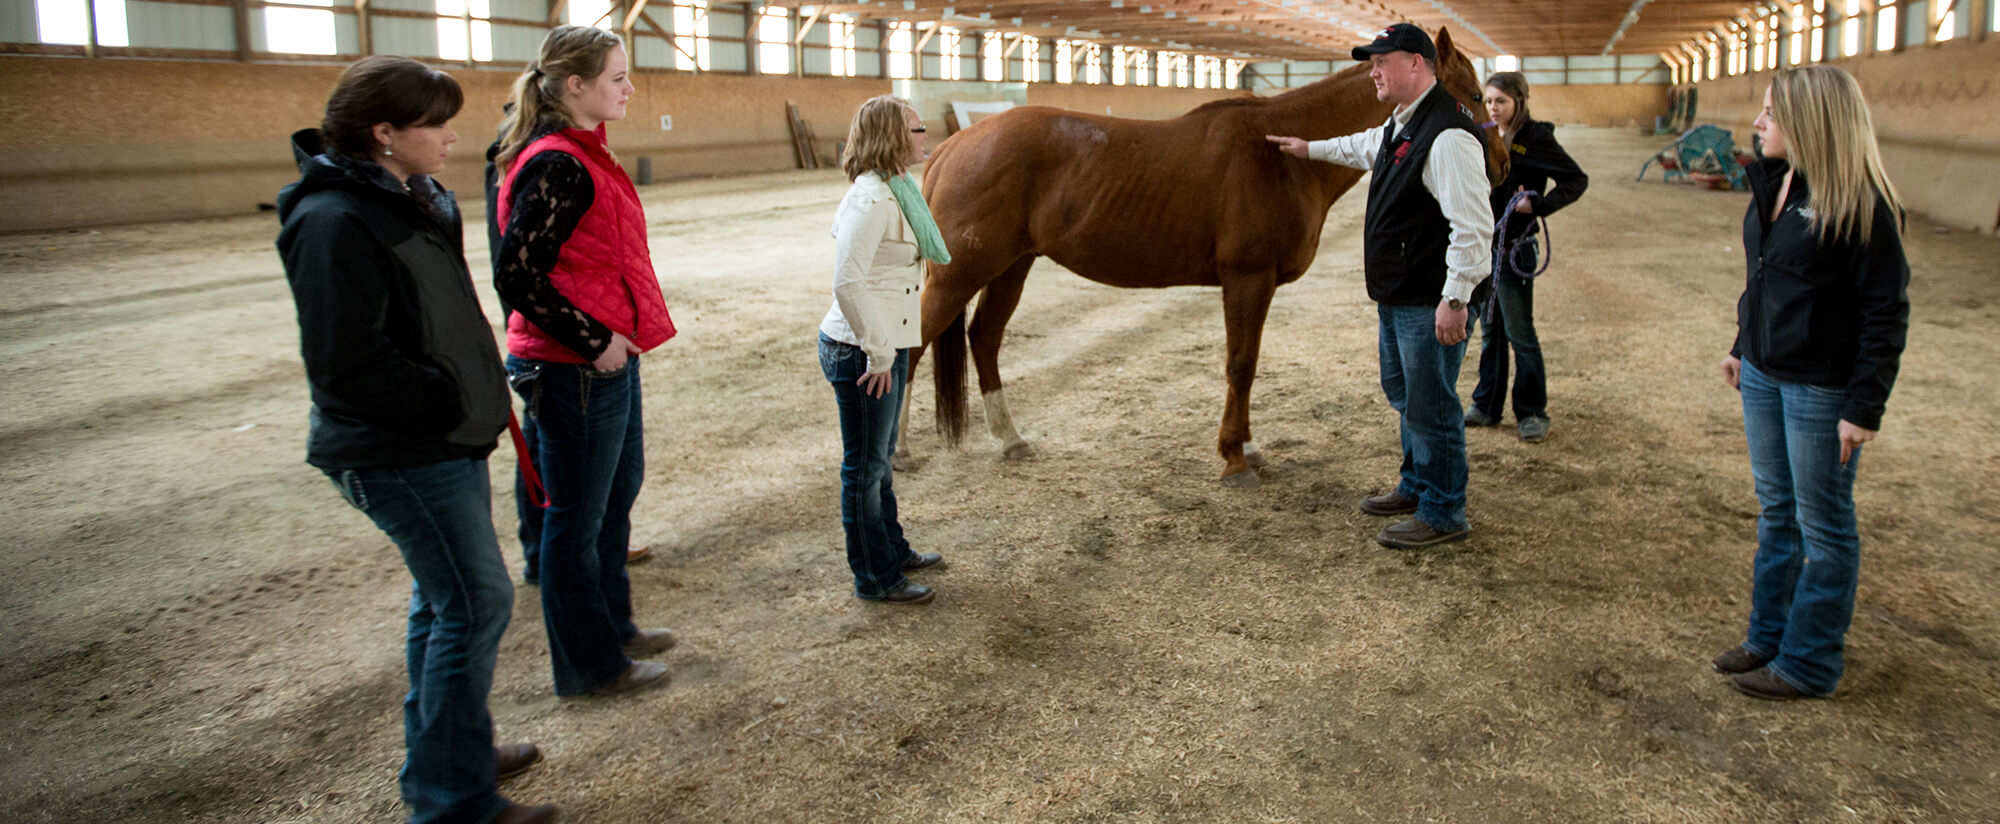 Inside a farm building, a male instructor gestures at a horse while a group of students surround him.